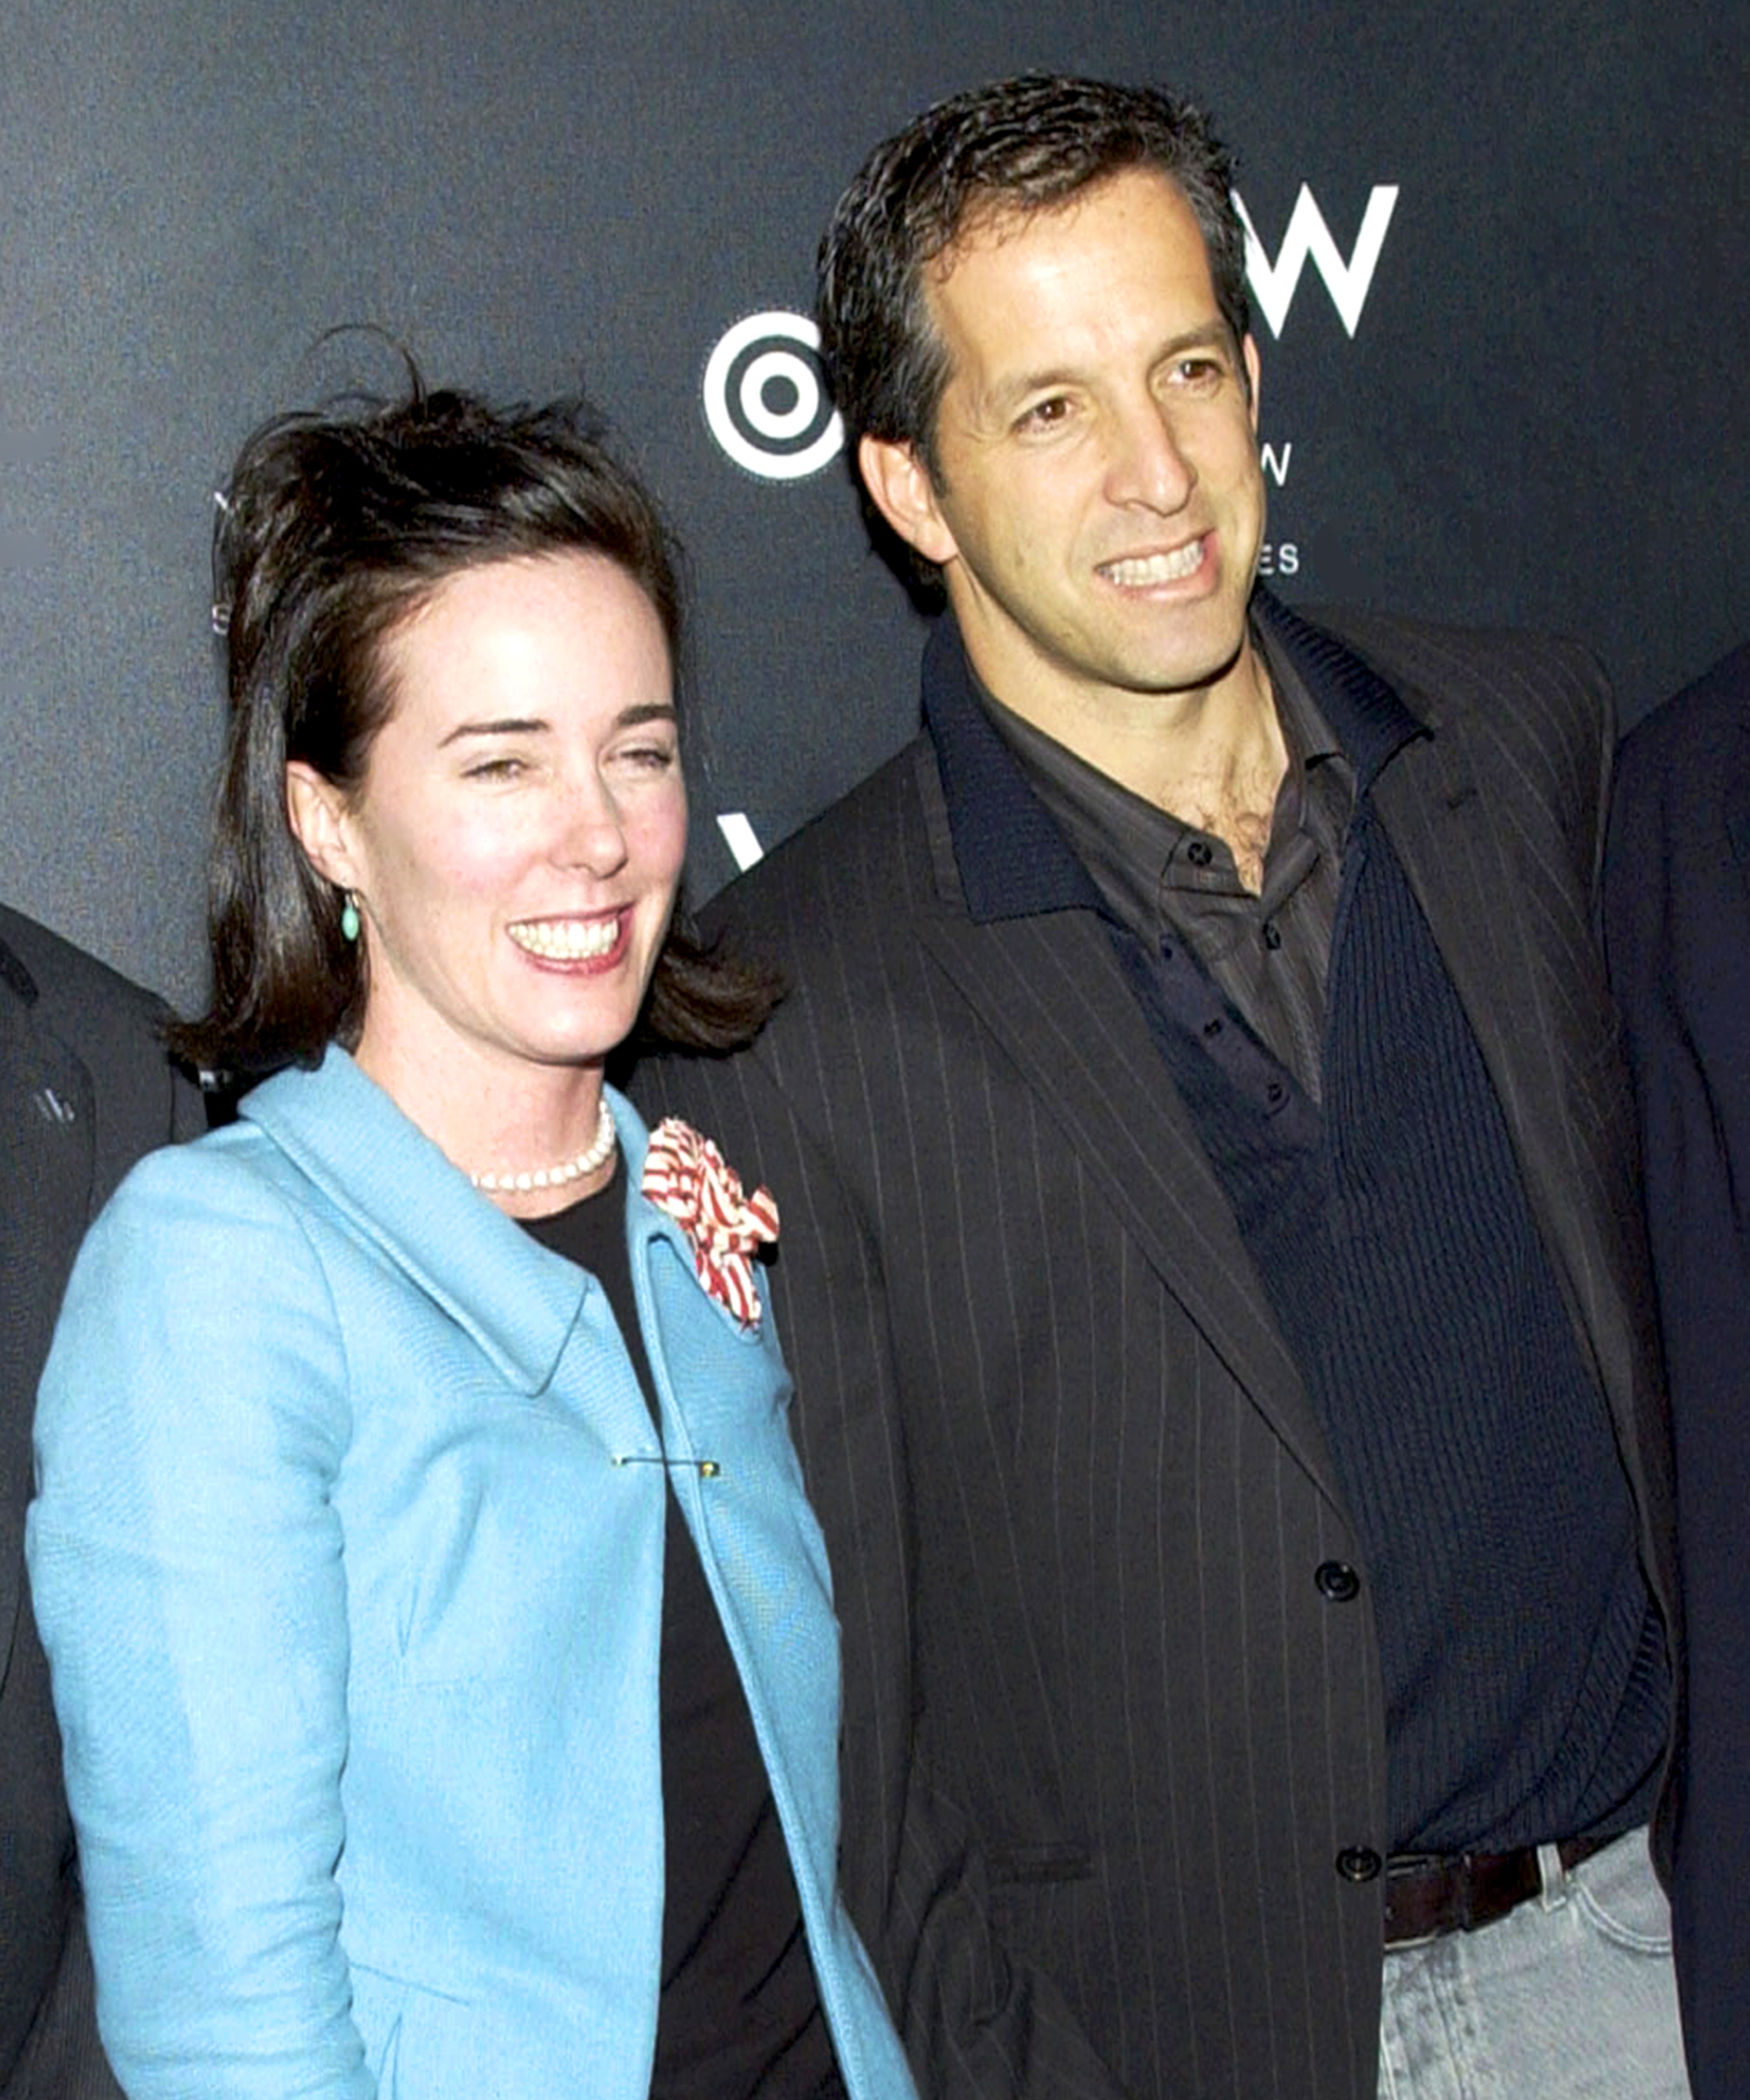 Kenneth Cole and Kate Spade attend the W Times Square Hotel opening in New York City in 2002.